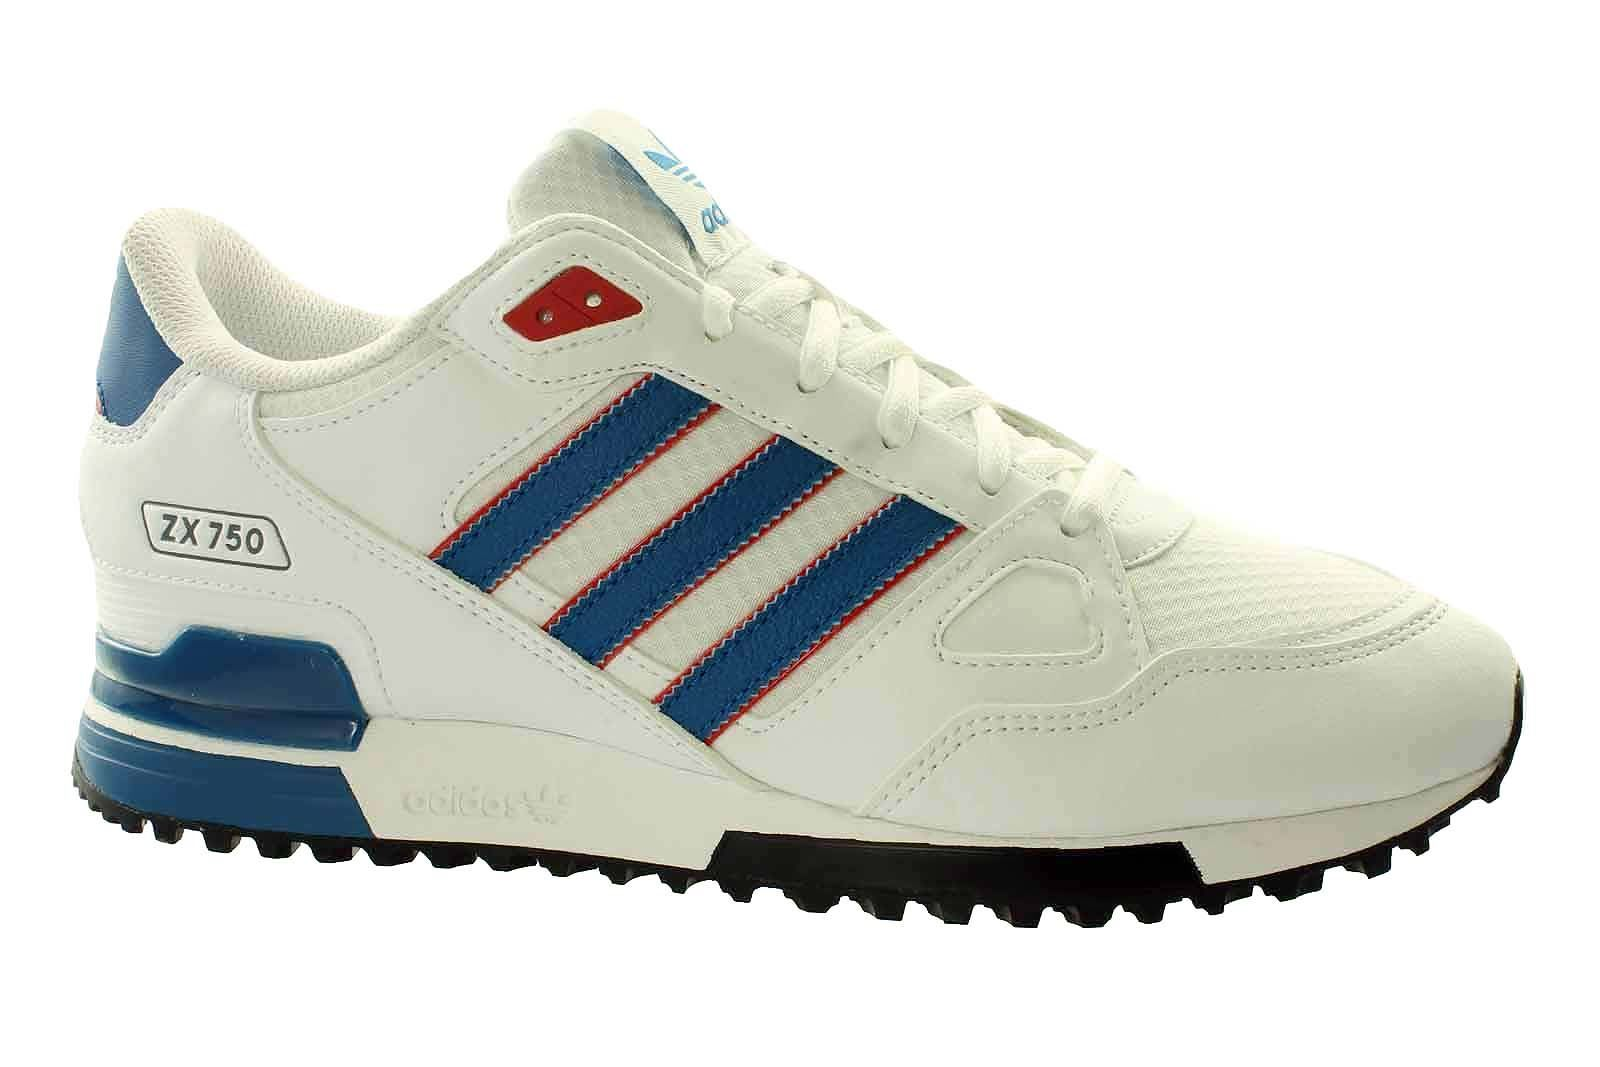 4da4a598ba88a adidas ZX 750 Mens Trainers~Originals~UK 3.5 - 11.5 Only in 2019 ...